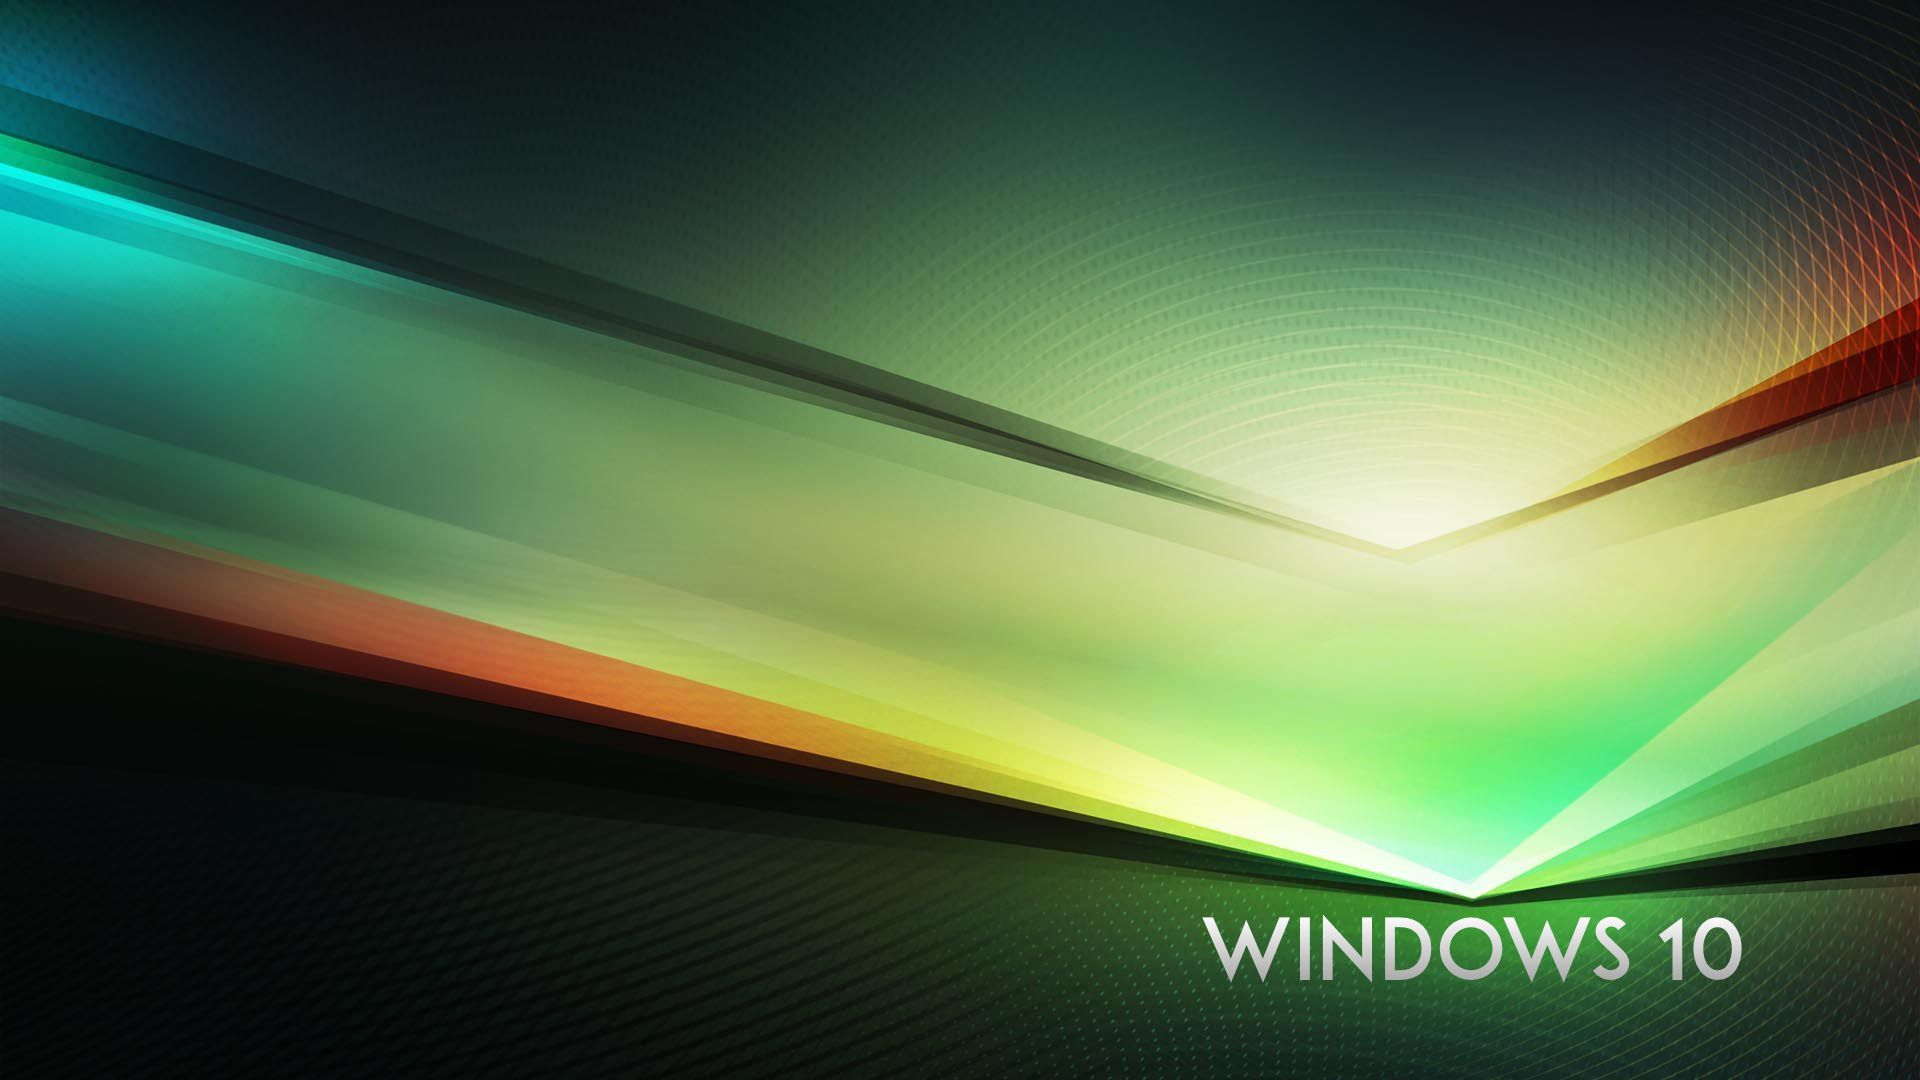 Windows 10 wallpapers 03 1920 x 1080 for Best quality windows